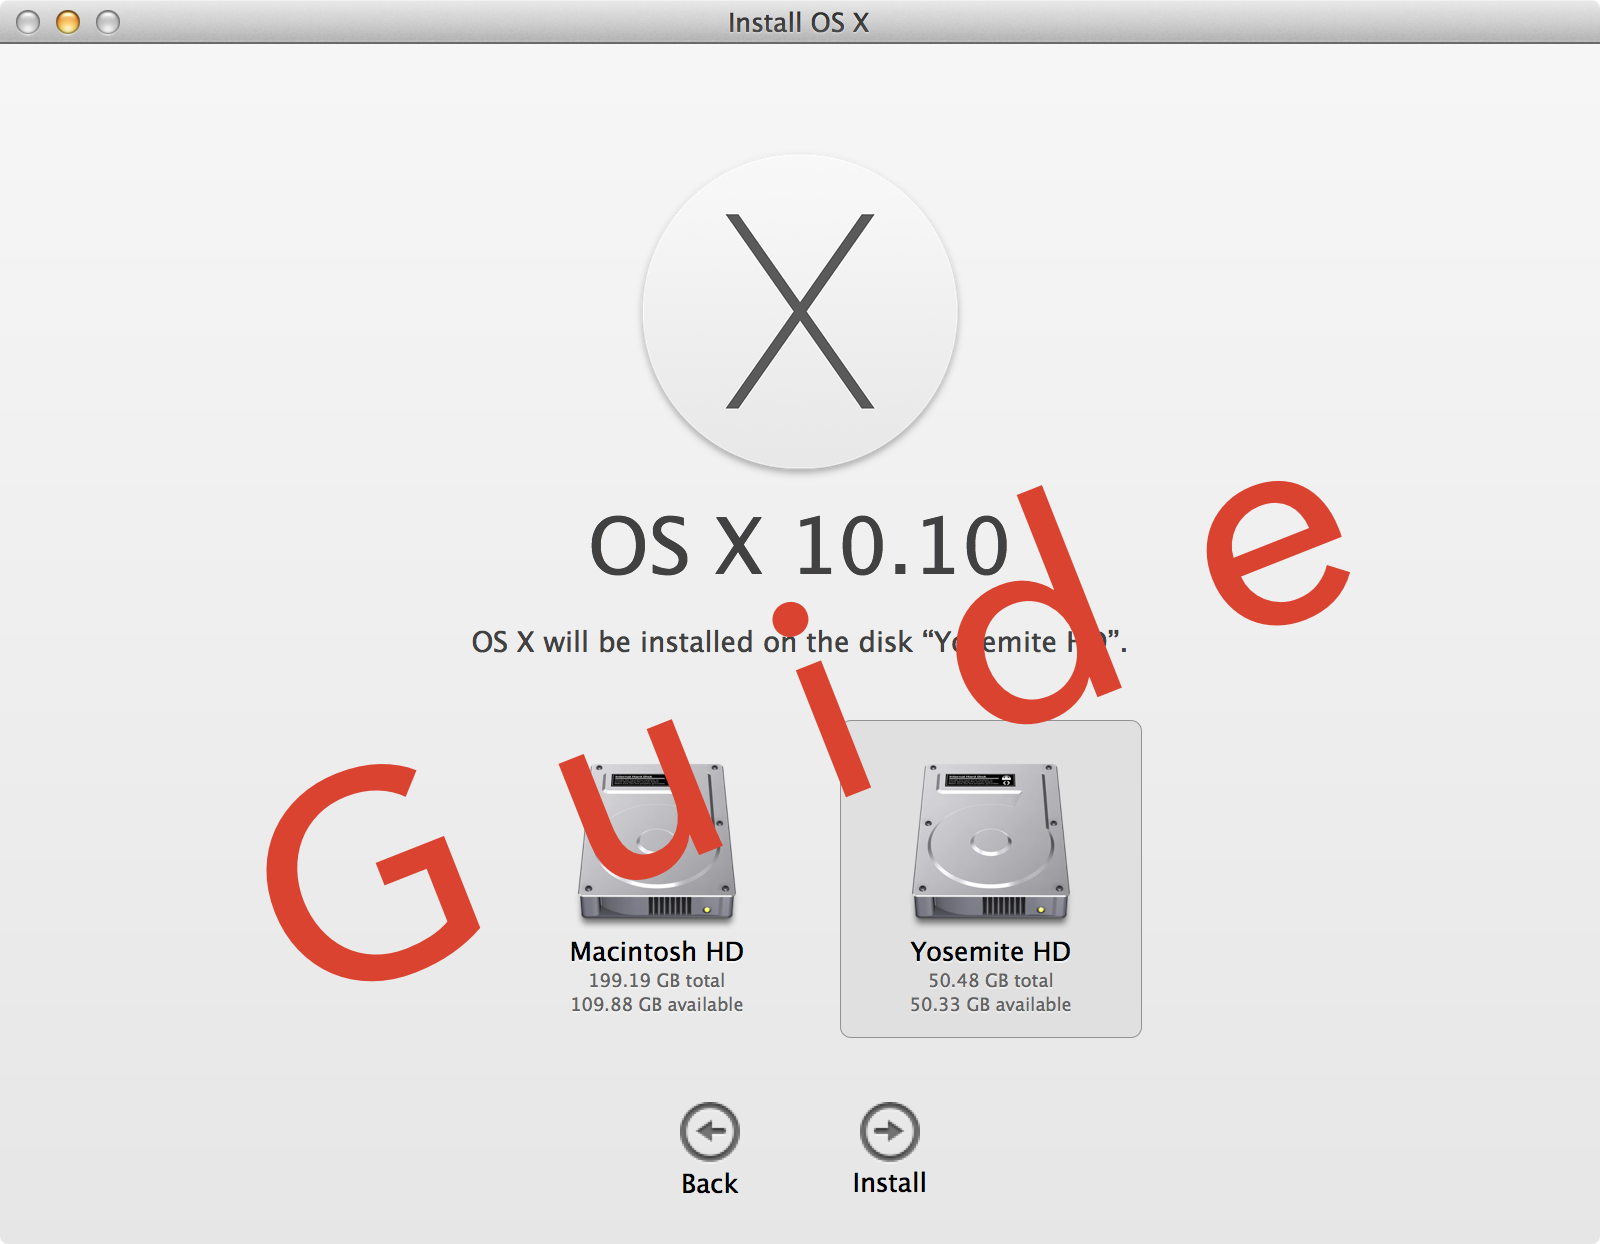 Install OS X Yosemite 10.10 Beta Guide Hero